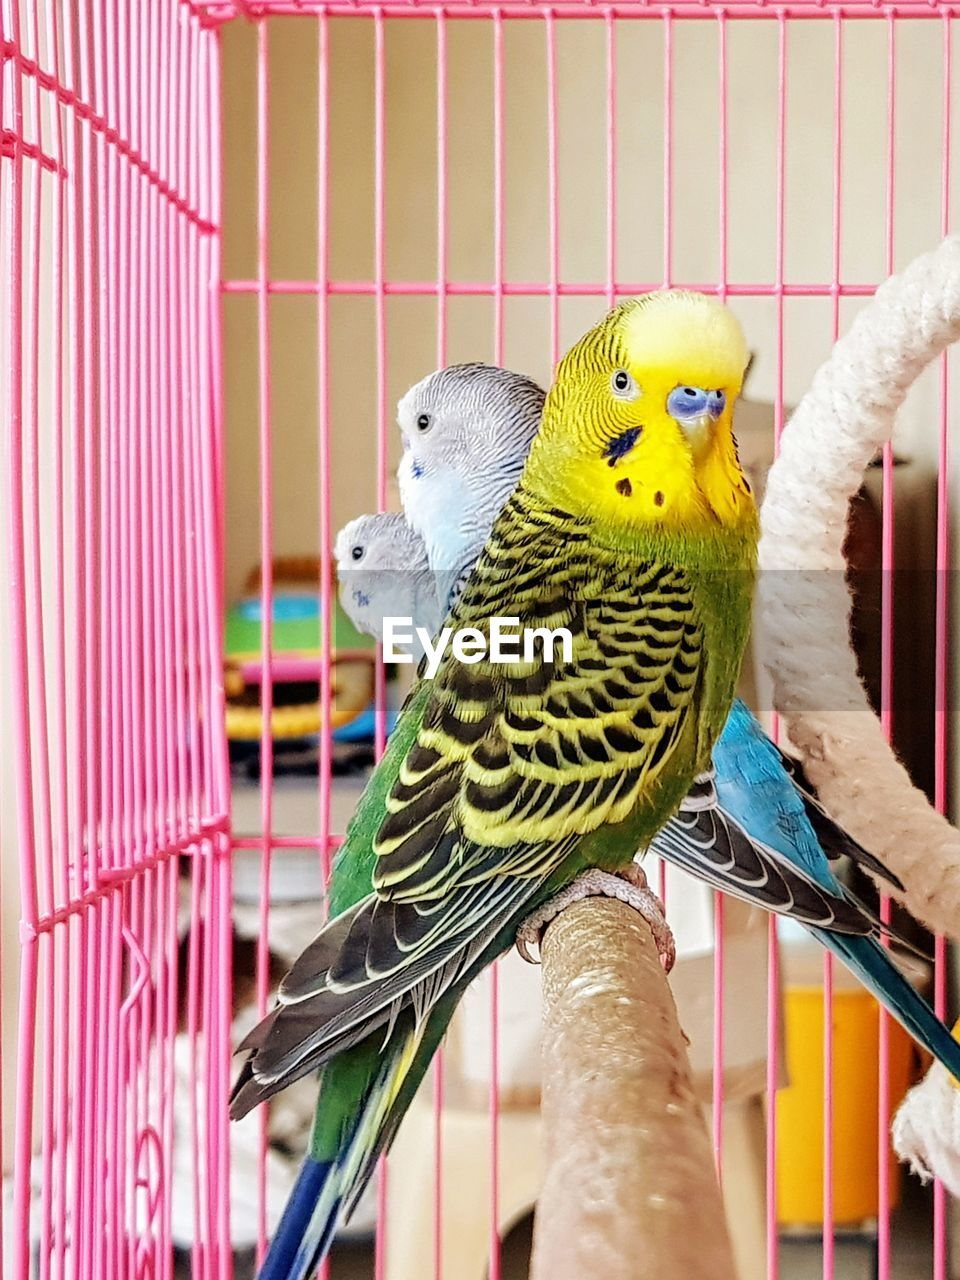 bird, budgerigar, parakeet, parrot, birdcage, perching, cage, indoors, animal themes, animals in captivity, pets, togetherness, multi colored, no people, nature, animals in the wild, domestic animals, day, close-up, mammal